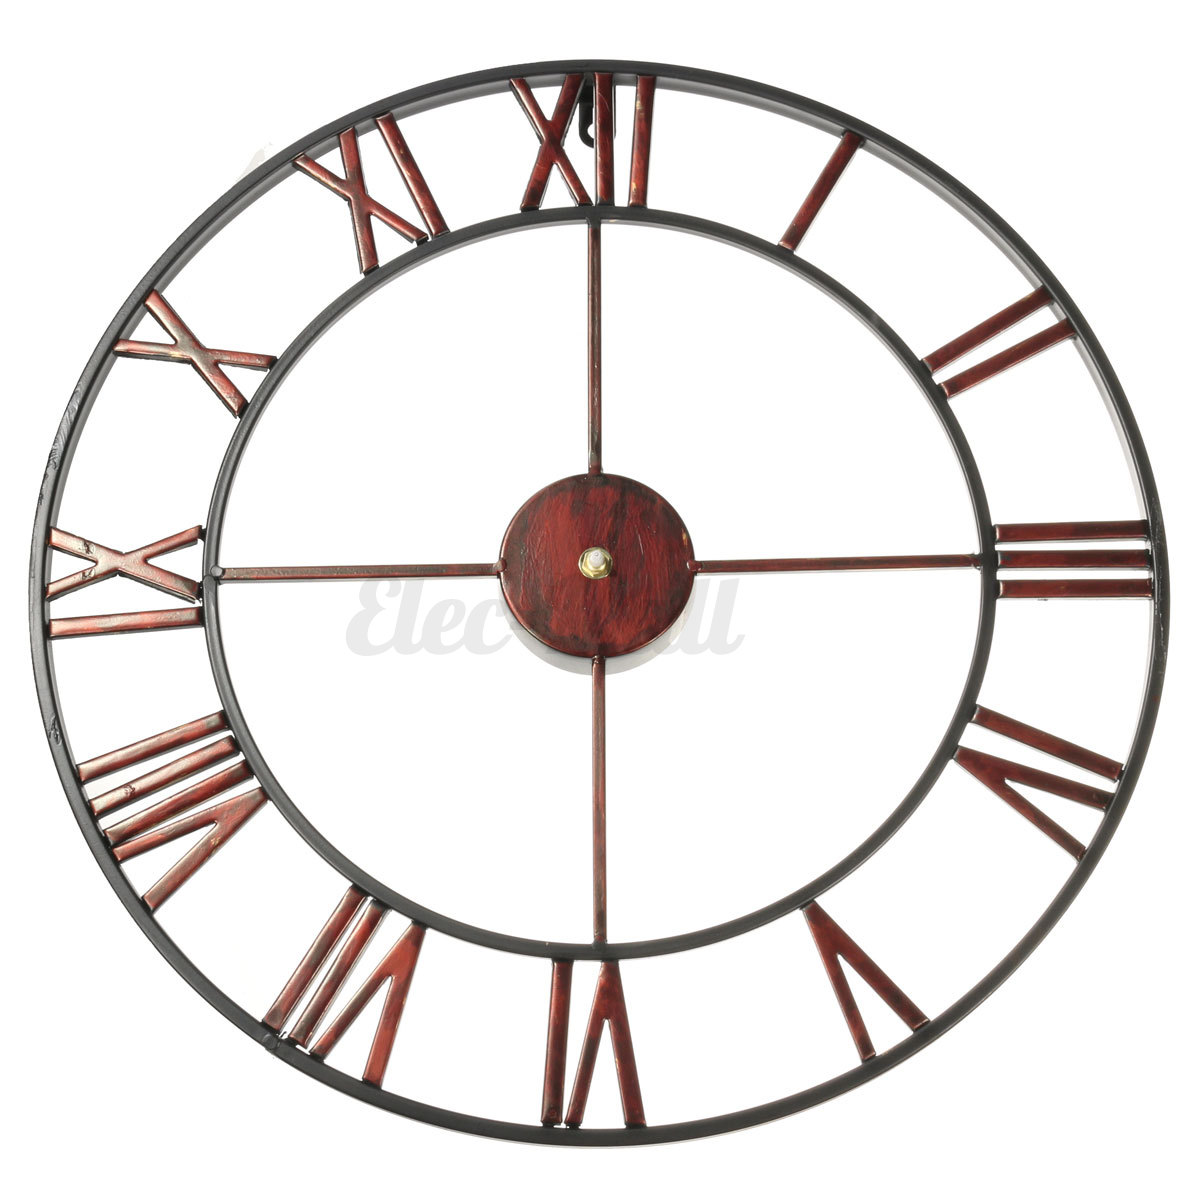 Classic large metal wrought iron wall clock roman numerals steampunk home decor ebay - Large roman numeral wall clocks ...